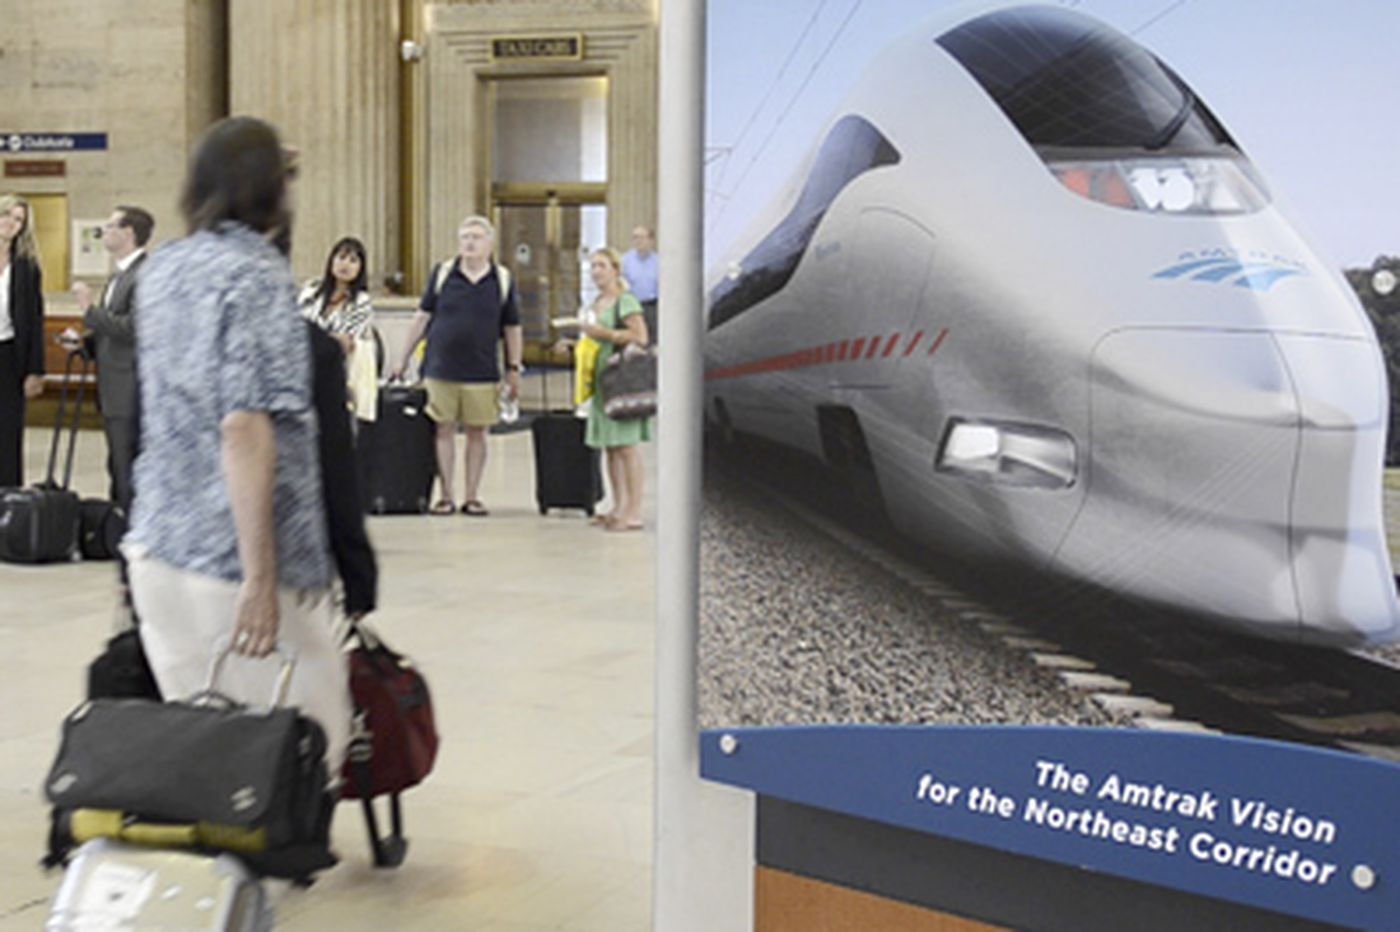 Planners look to speed, improve rail service